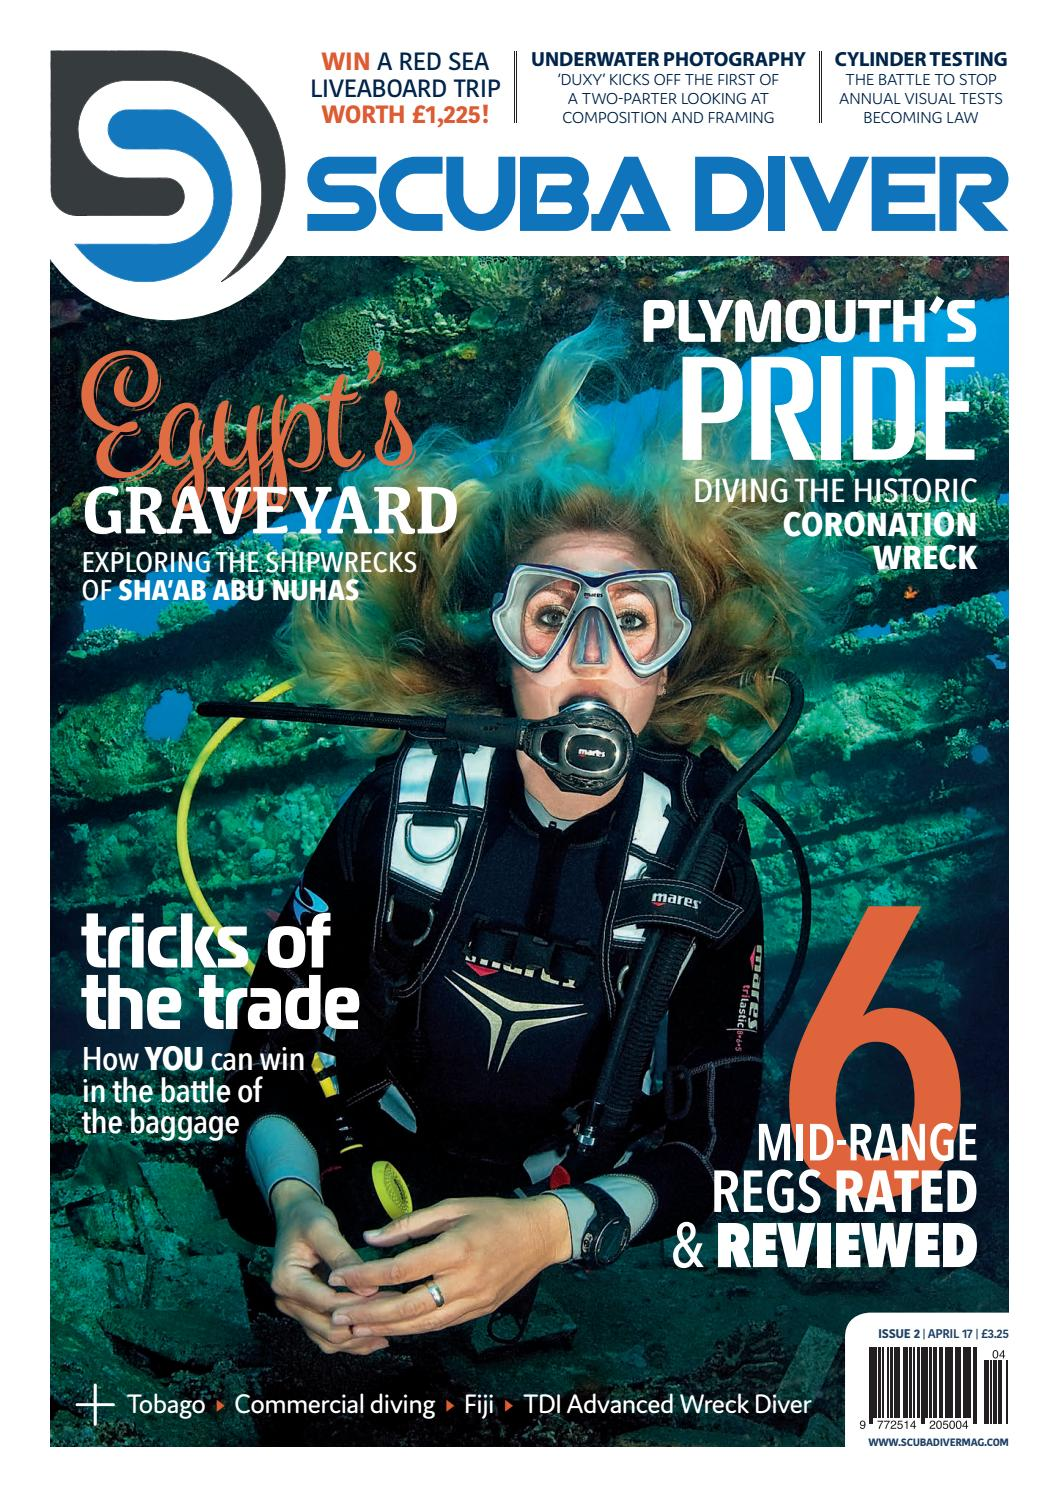 Scuba Diver April 17 Issue 2 By Scubadivermag Issuu Torch Messenger Bag Odate Abu